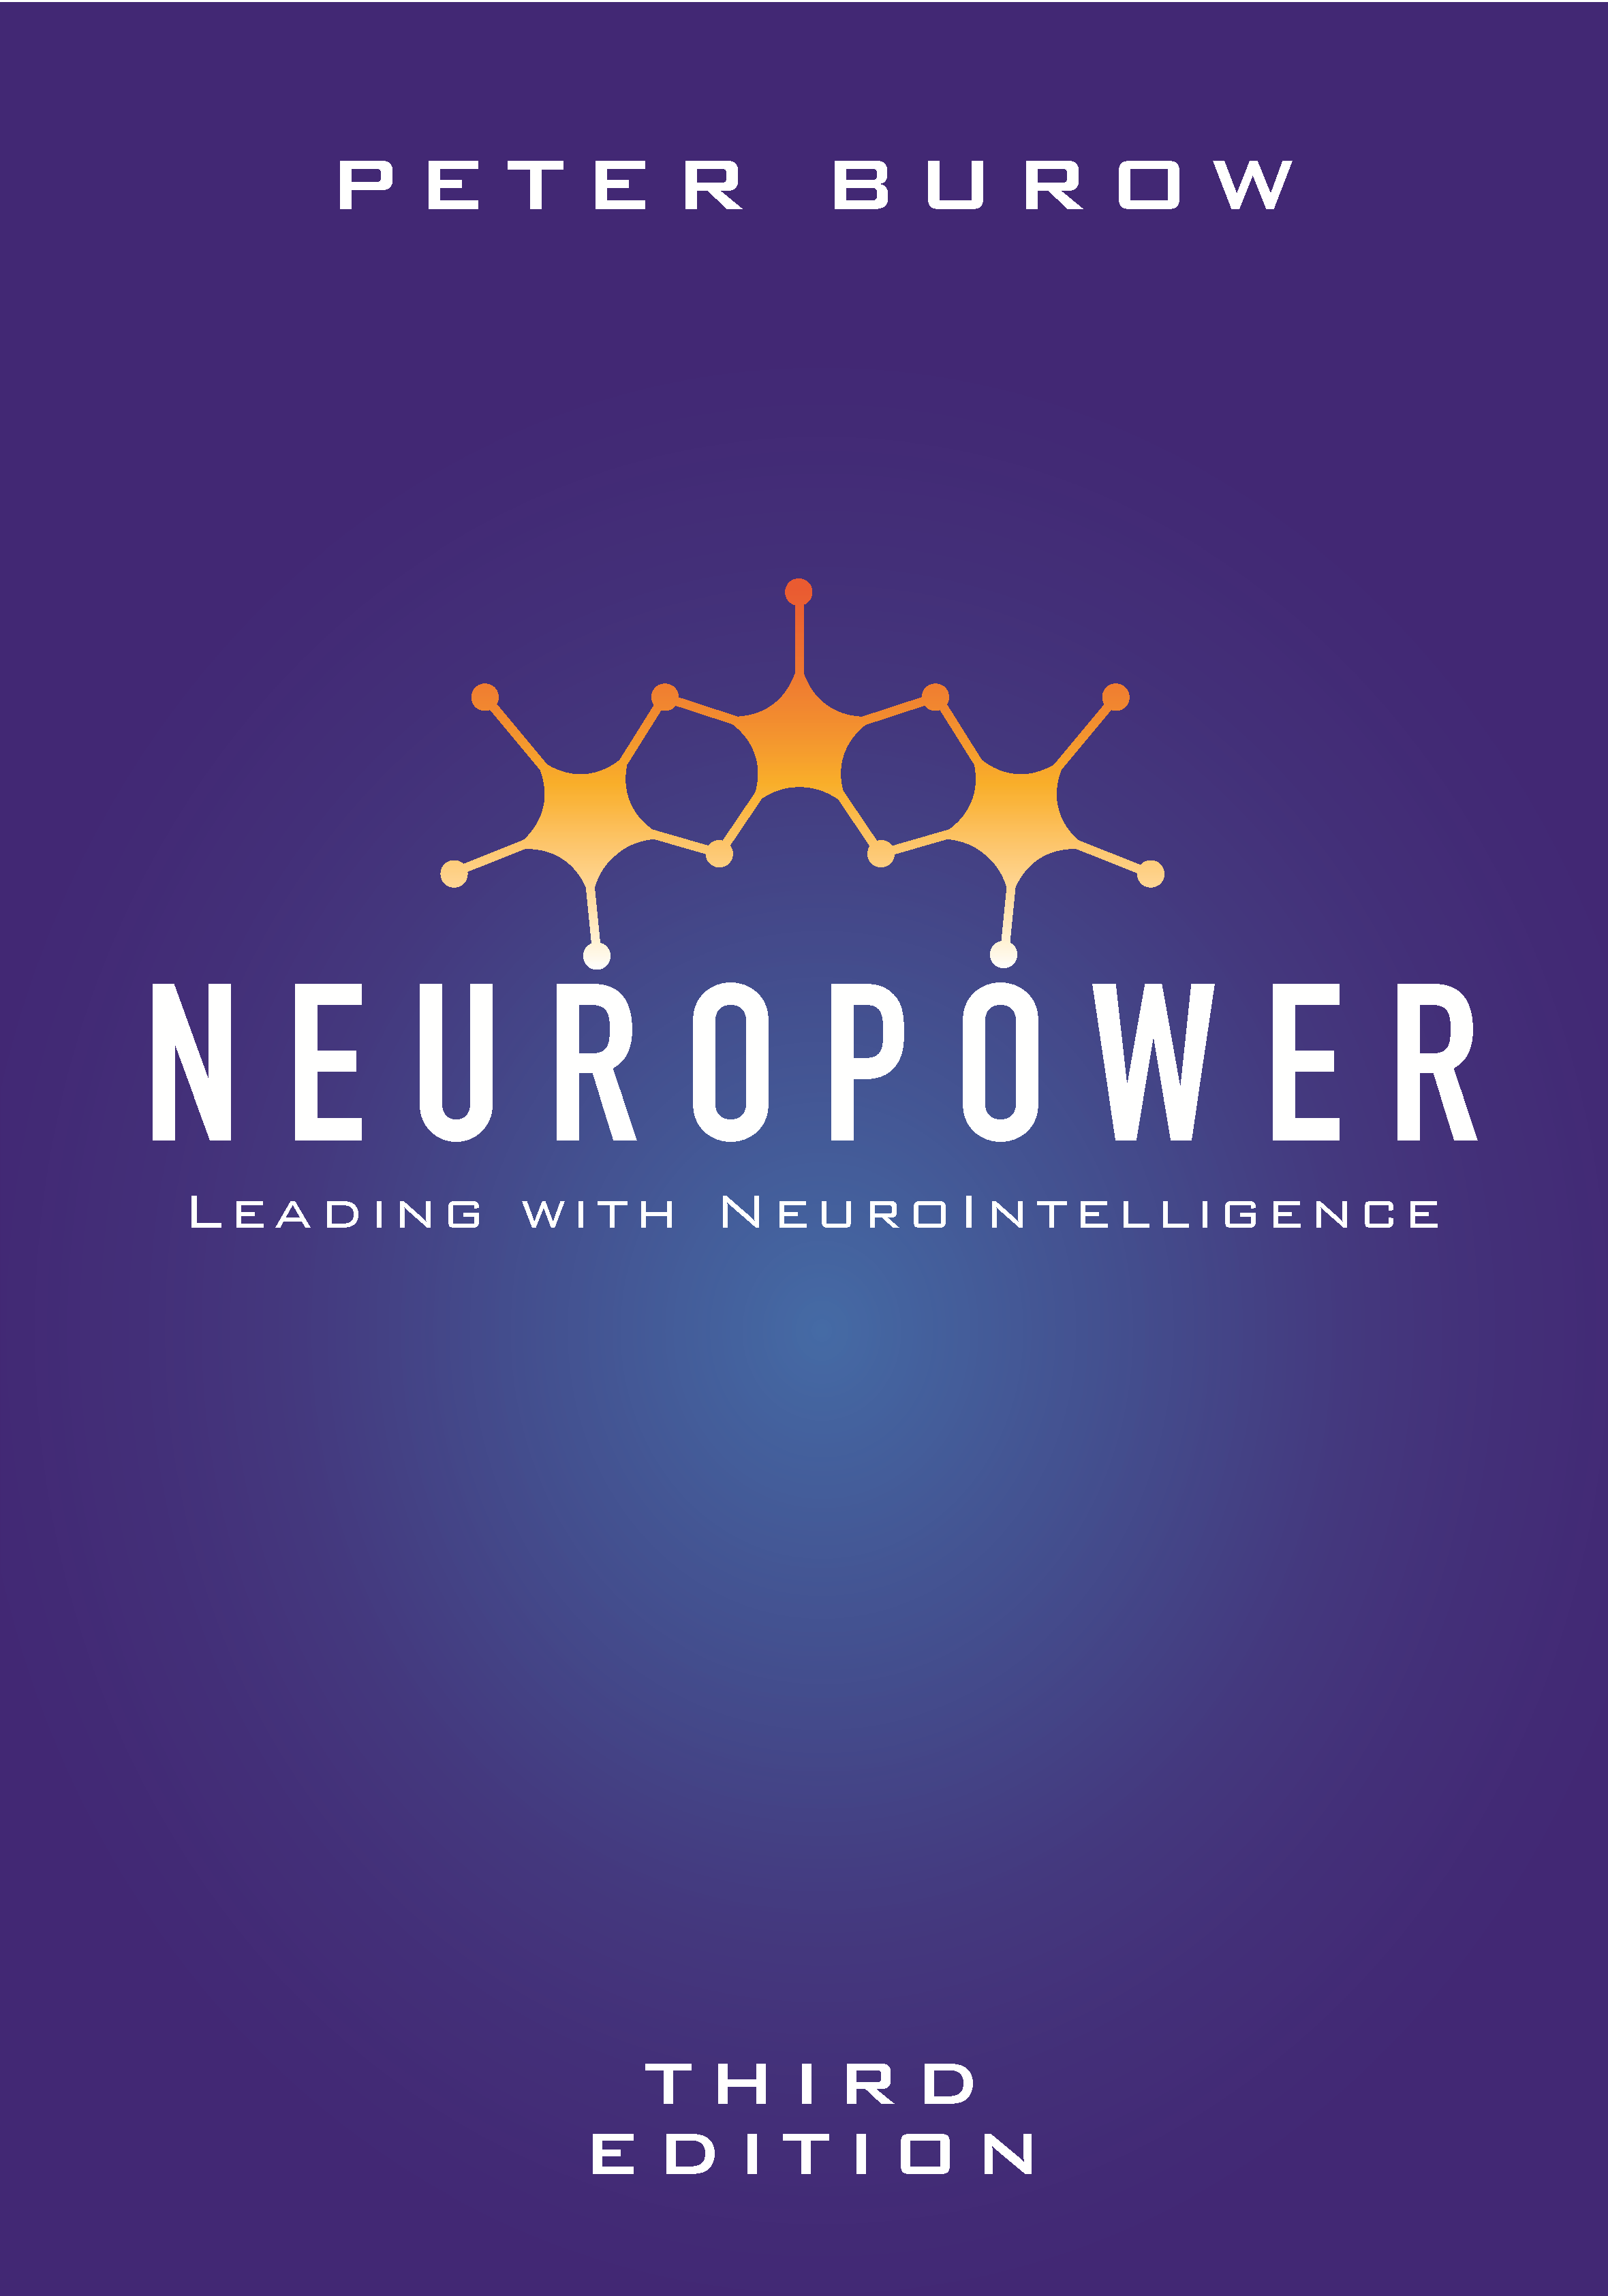 01 neuropower_cover_130822 (1).png